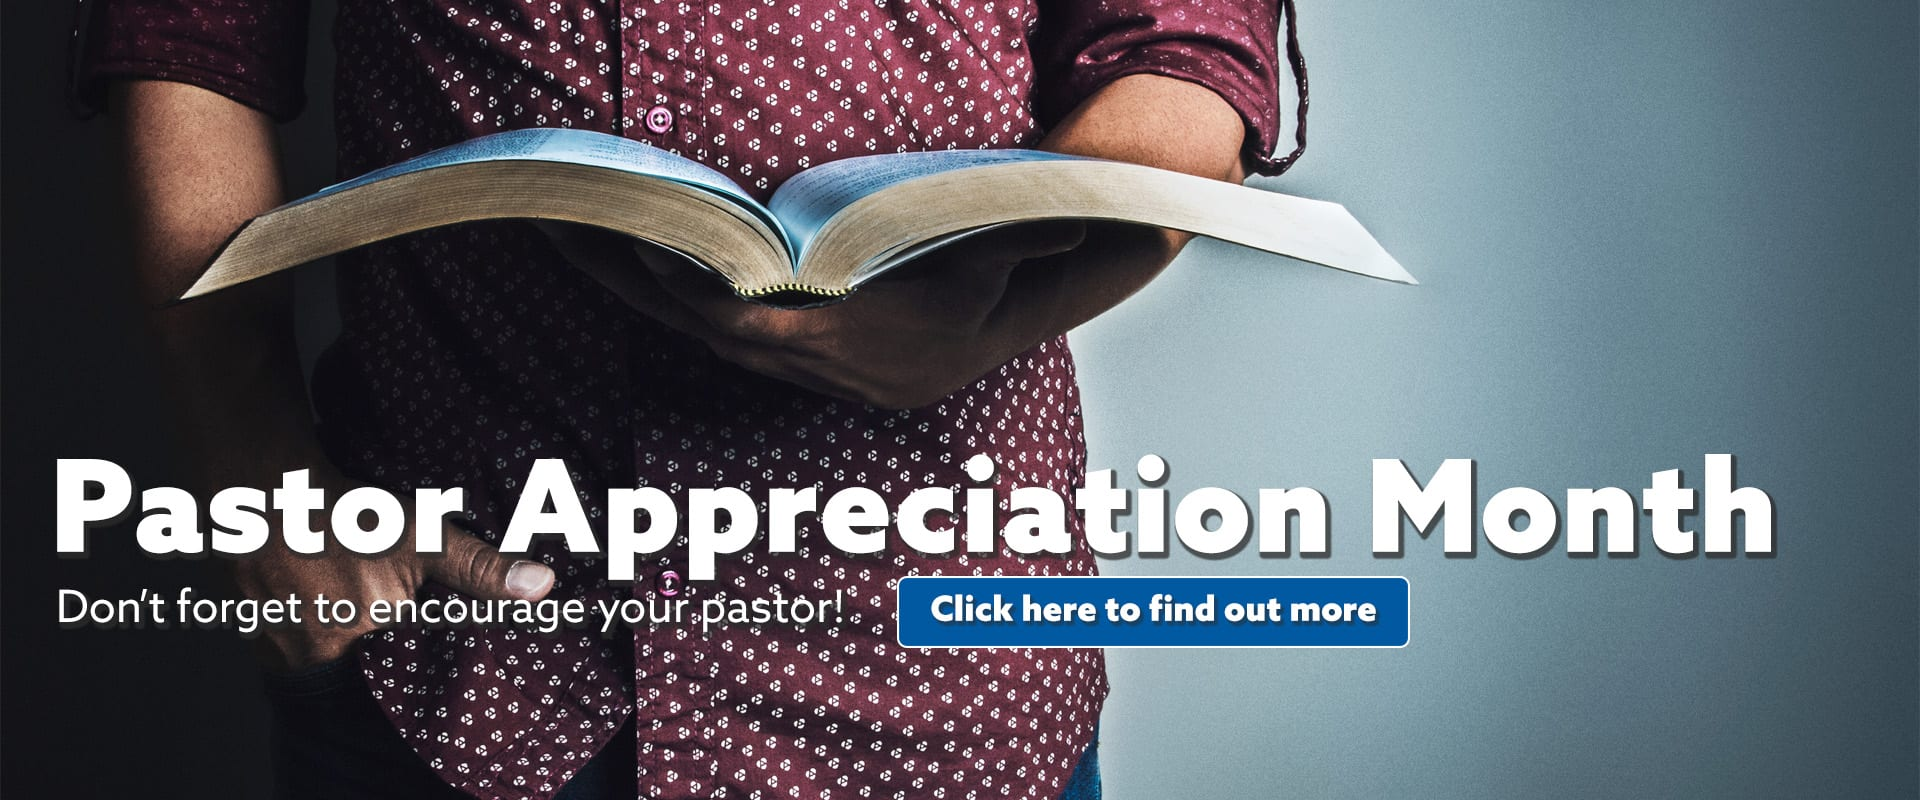 2019 Pastor Appreciation Month KGLY